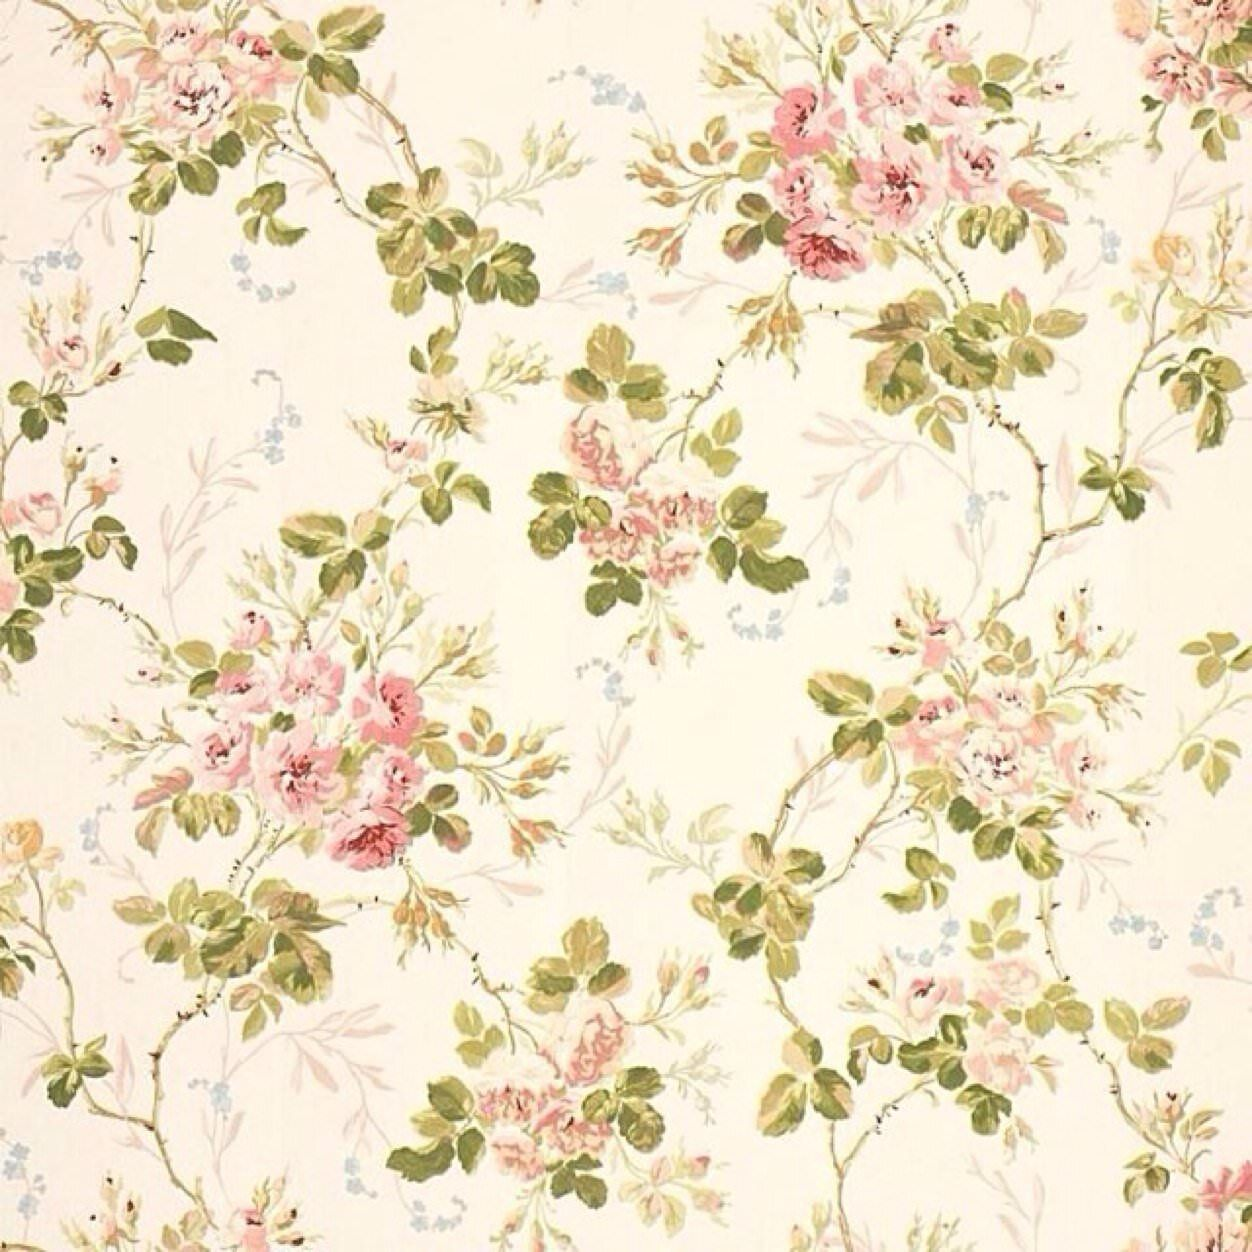 Pin By Beth Beasley Pearson On Wallpaper Vintage Floral Wallpapers Vintage Flowers Wallpaper Vintage Flower Backgrounds